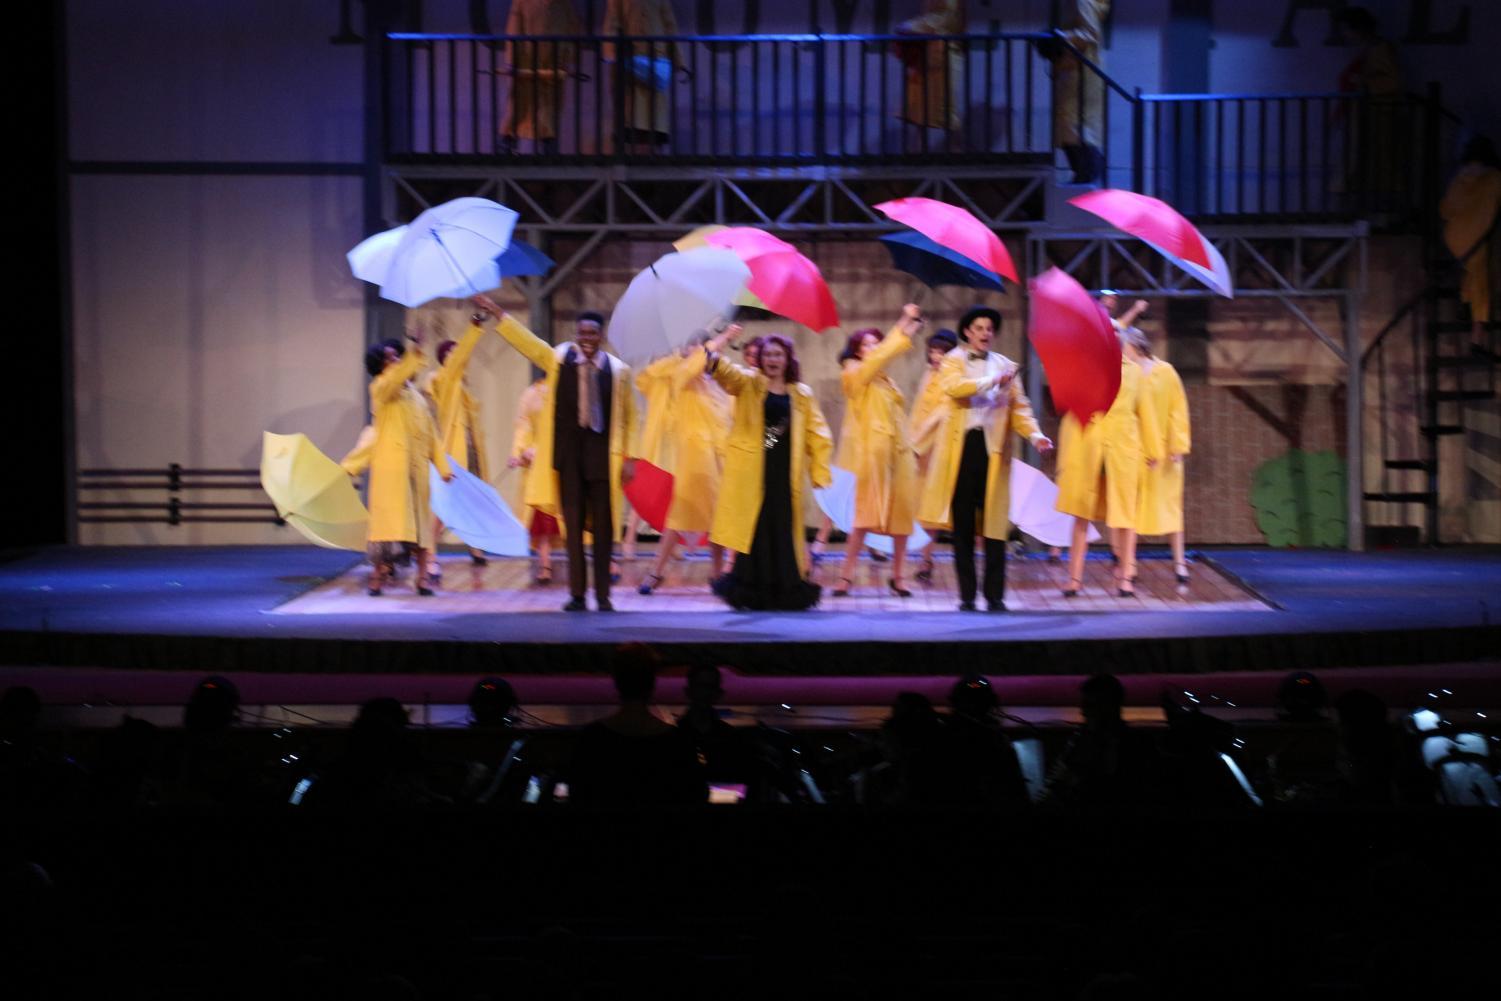 As the first performance of the year, theater kicked off with the musical Singing in the Rain on Thursday with showtimes until Sunday. Through the detailed scenery and graceful acting, Wingspan's Minuki Medis left the show in awe.